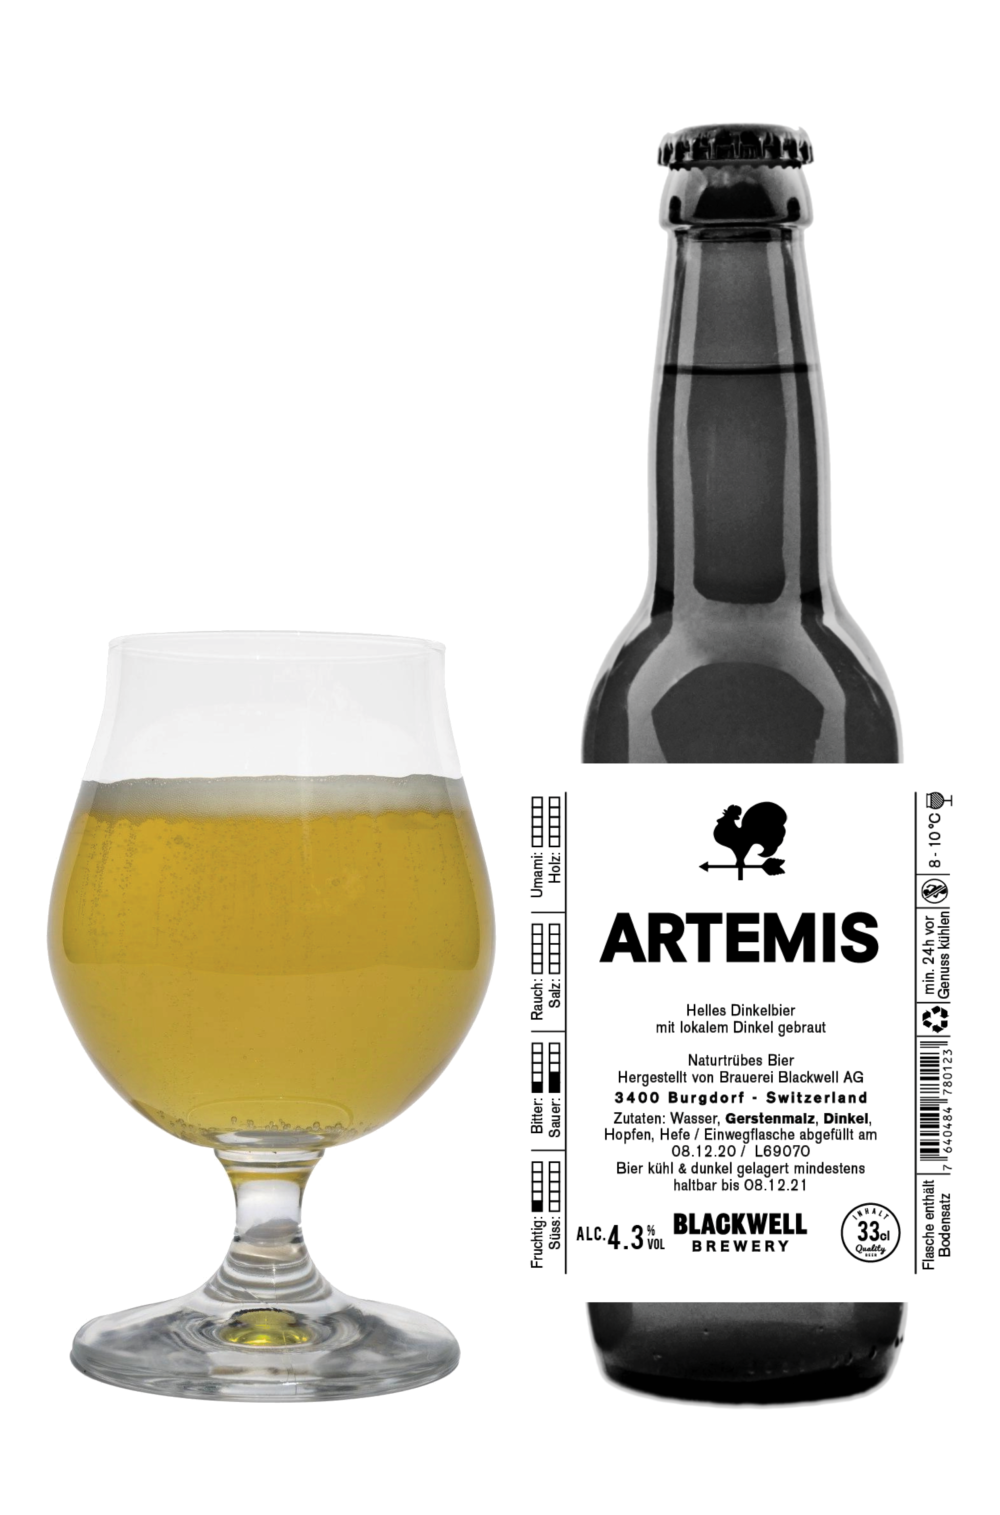 https://blackwellbrewery.ch/wp-content/uploads/2020/05/ArtemisBlackwell-1-e1614258131782.png